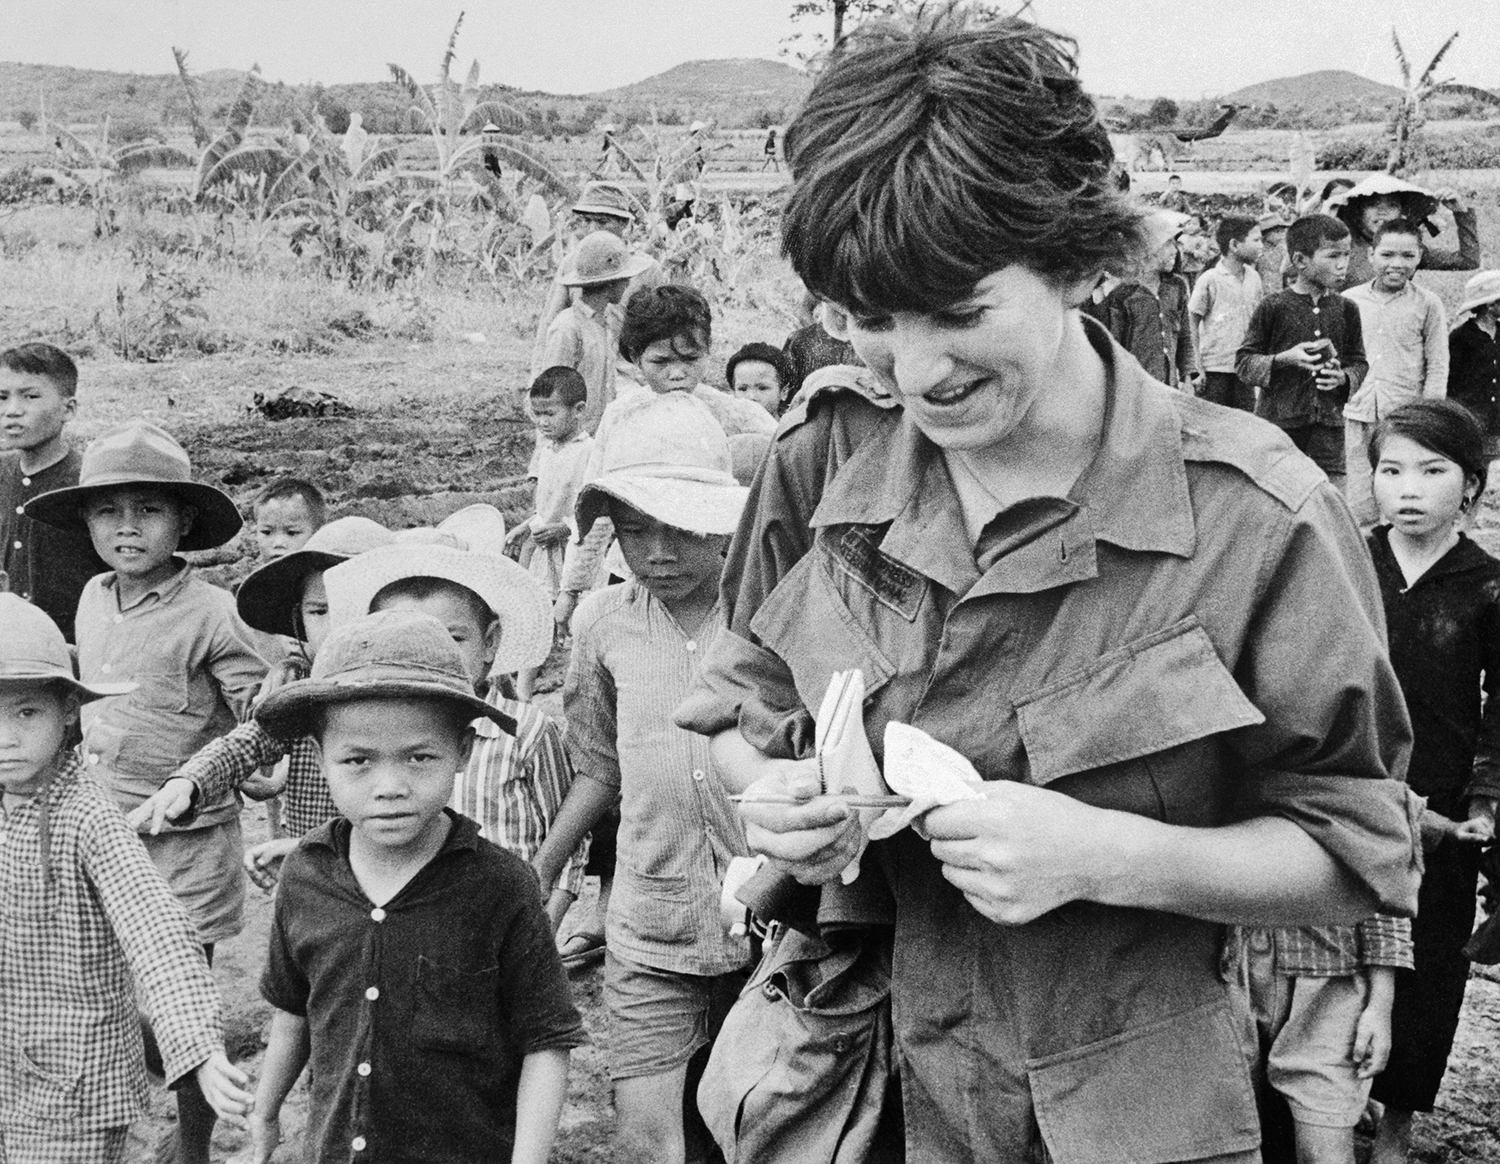 Webb at a refugee camp during the Vietnam War, circa 1968.